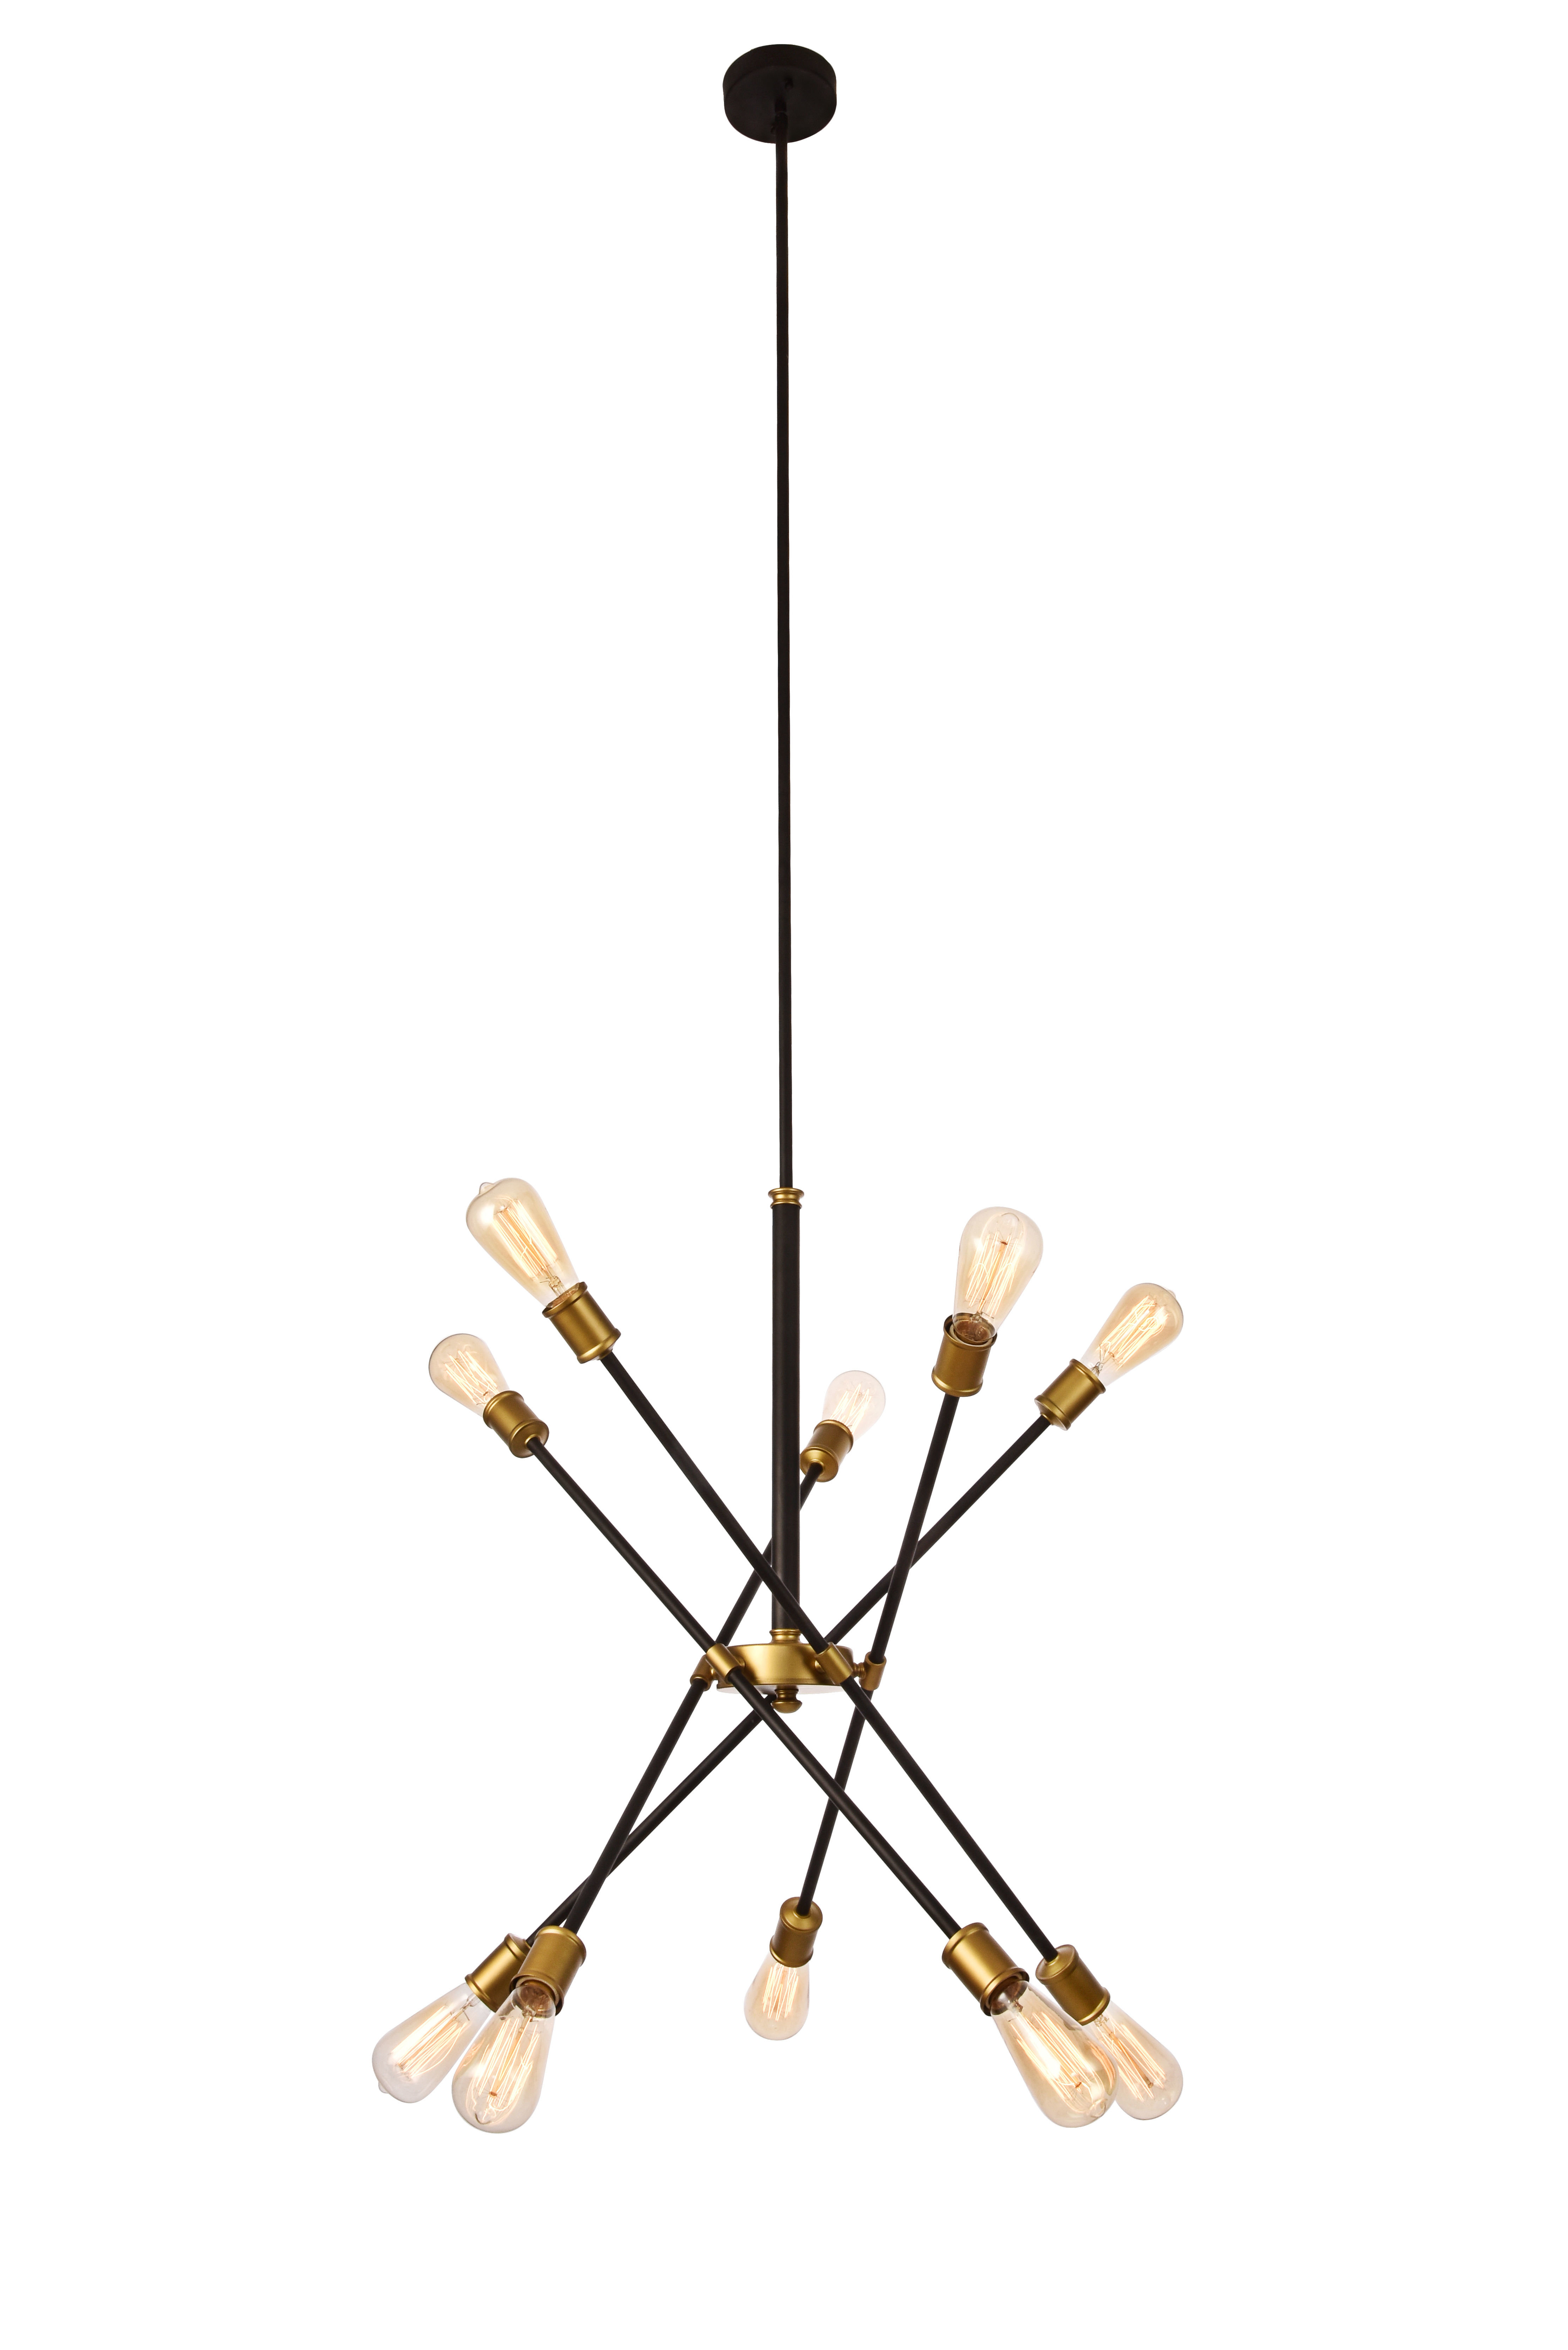 Vroman 12 Light Sputnik Chandeliers For Most Current Langley Street Caden 10 Light Sputnik Chandelier (View 16 of 25)